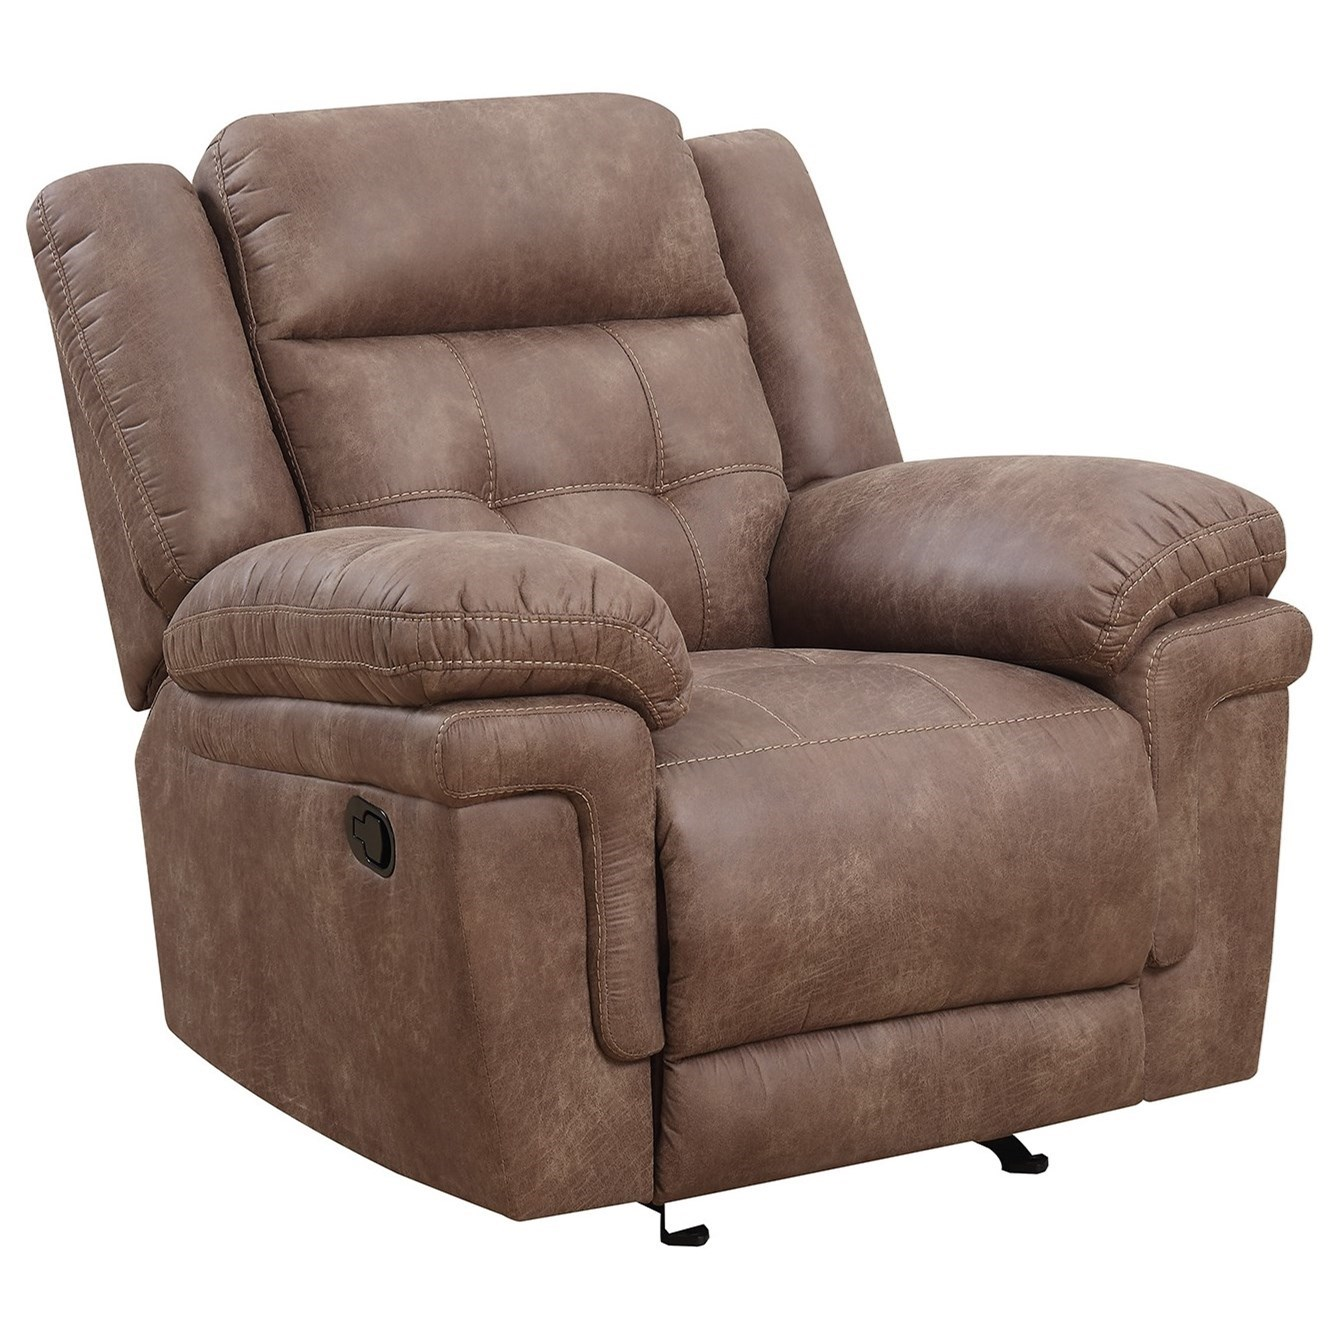 Anastasia Glider Reclining Chair by Steve Silver at Van Hill Furniture